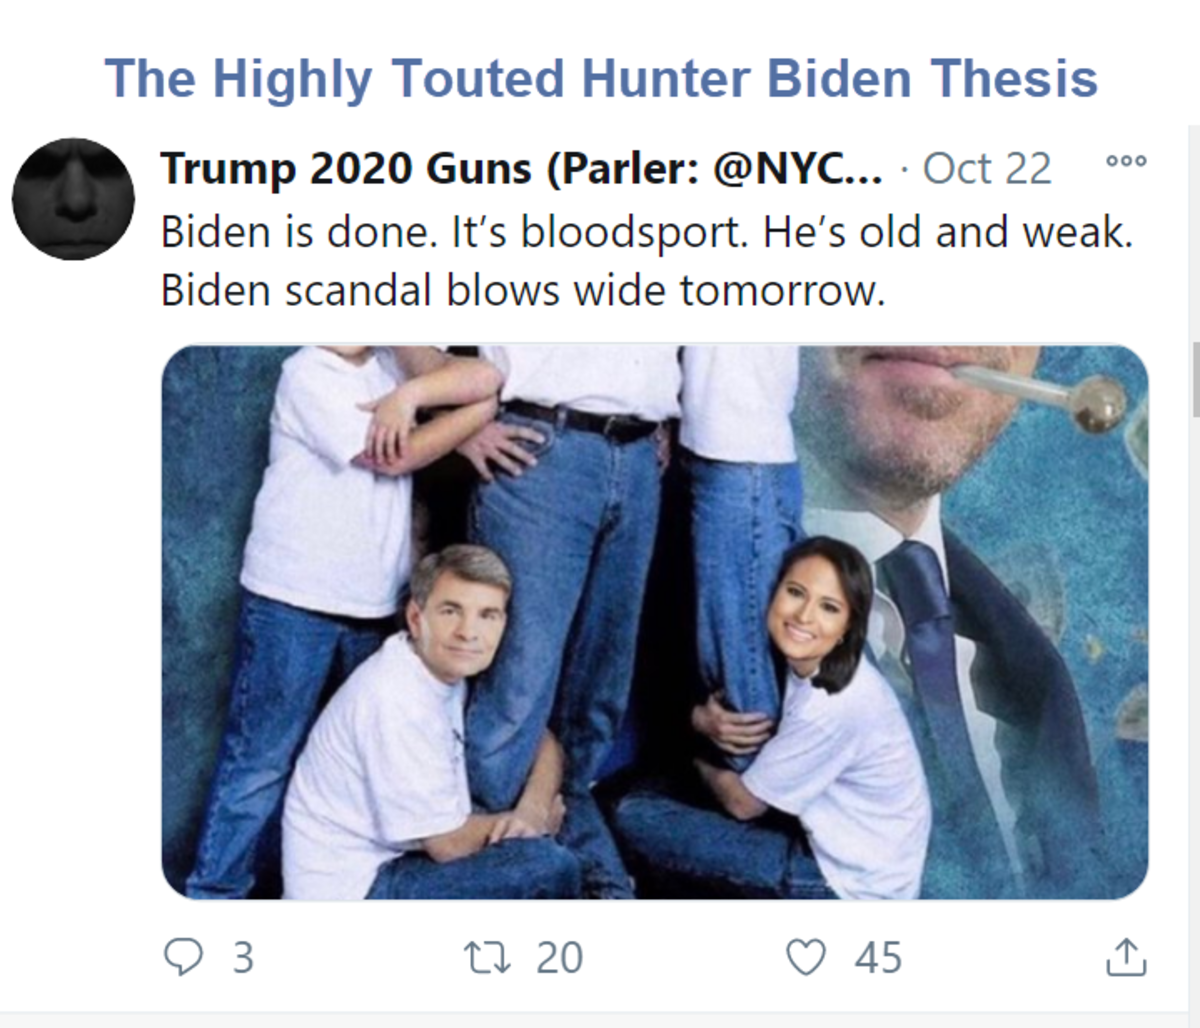 The Highly Touted Hunter Biden Thesis